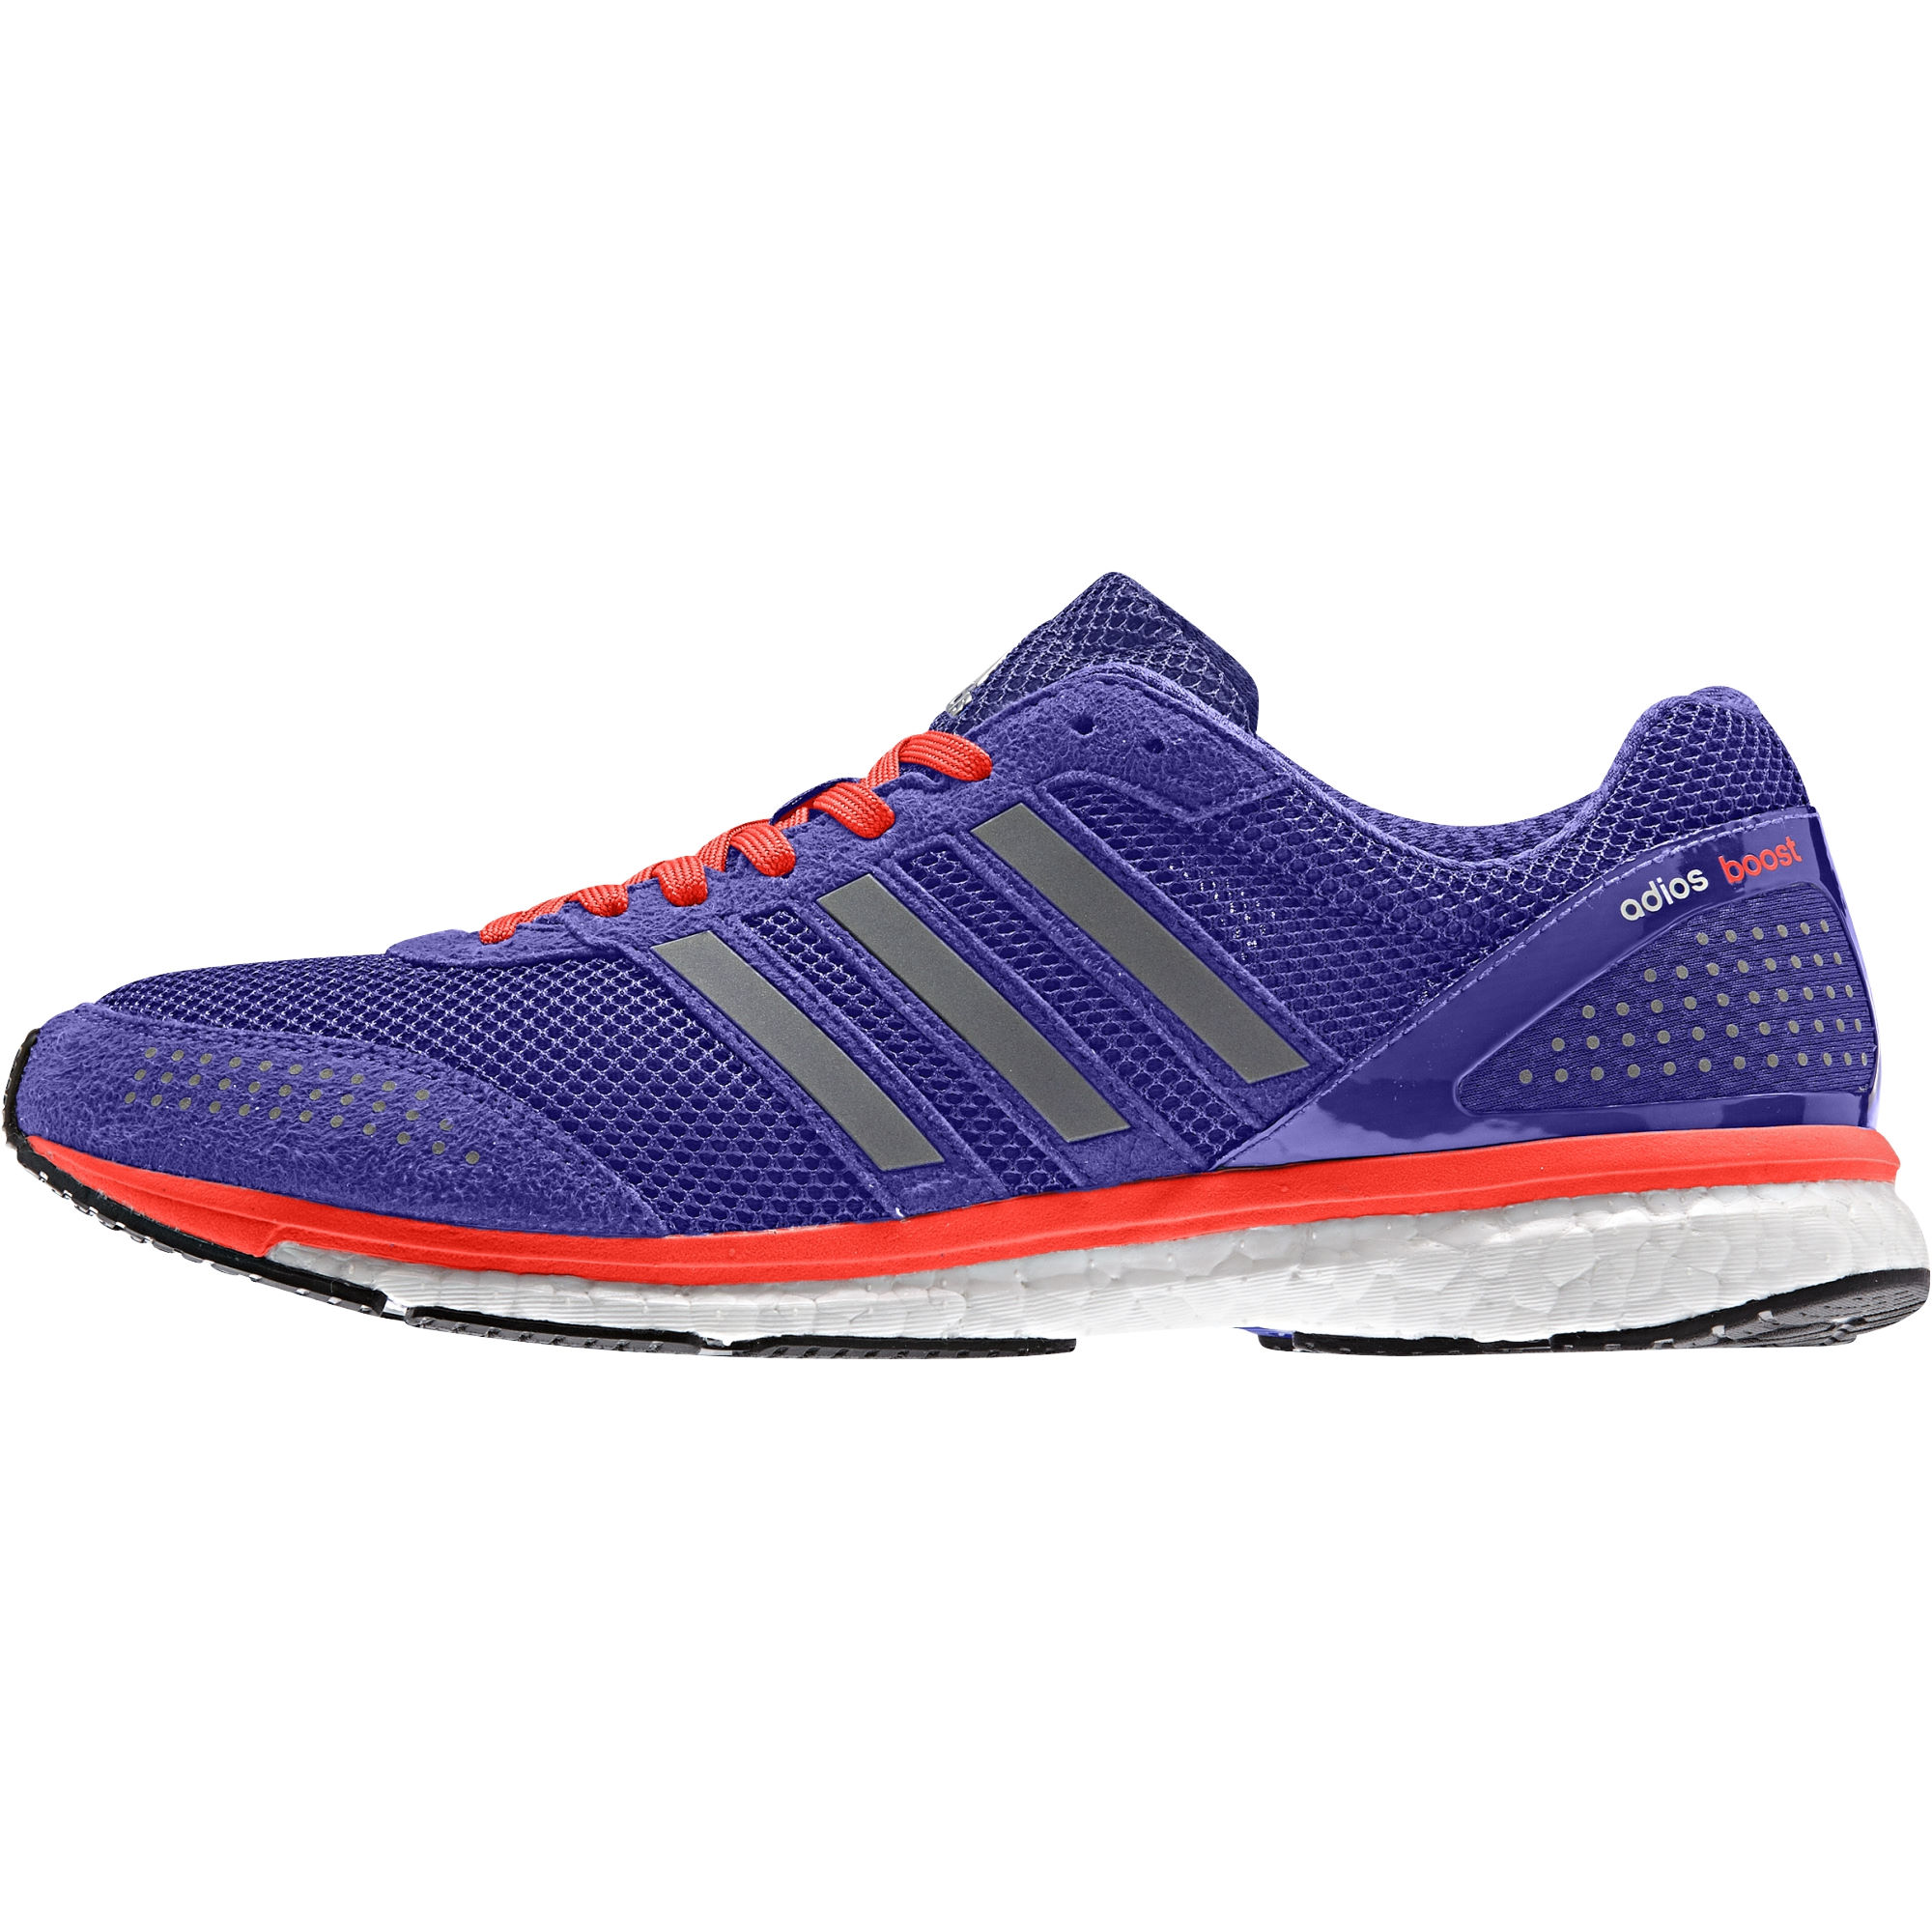 wiggle adidas adizero adios boost 2 shoes ss15 racing running shoes. Black Bedroom Furniture Sets. Home Design Ideas